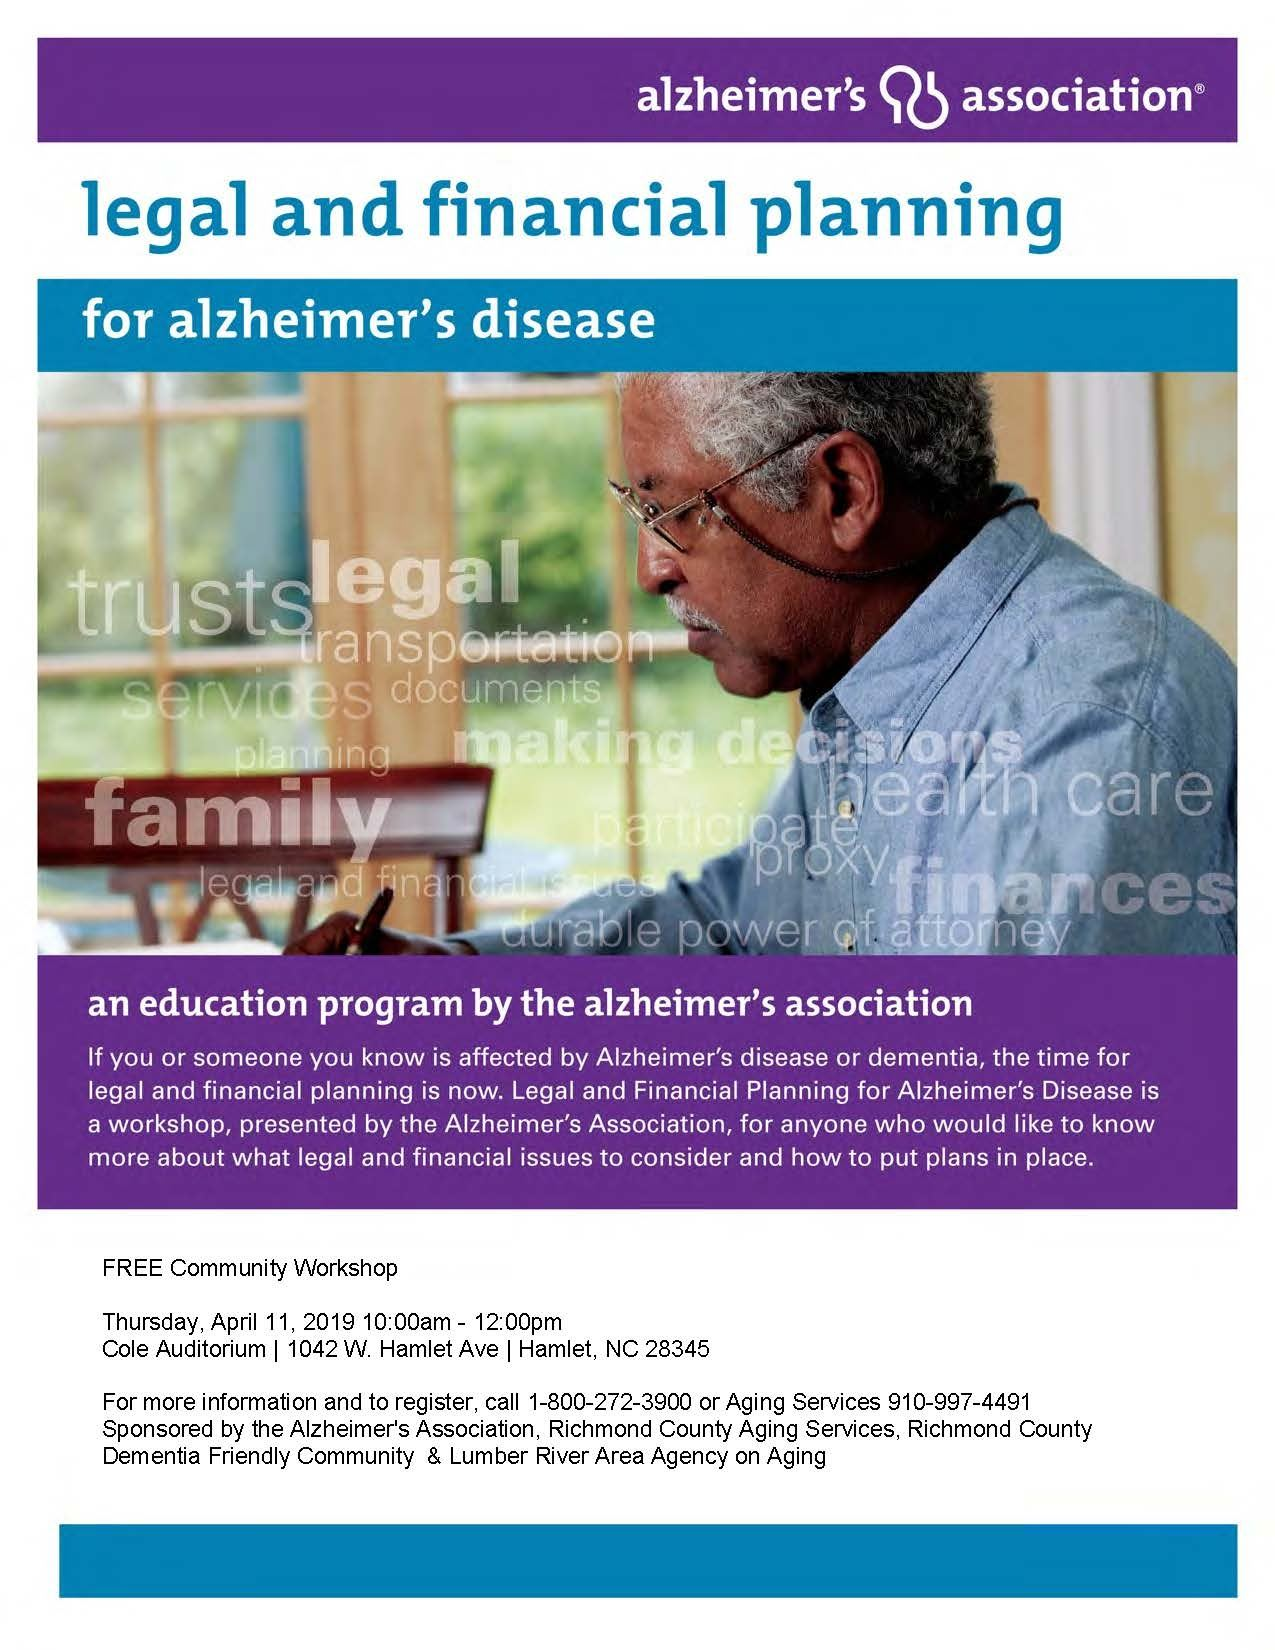 Legal and Financial Planning Workshop Richmond County